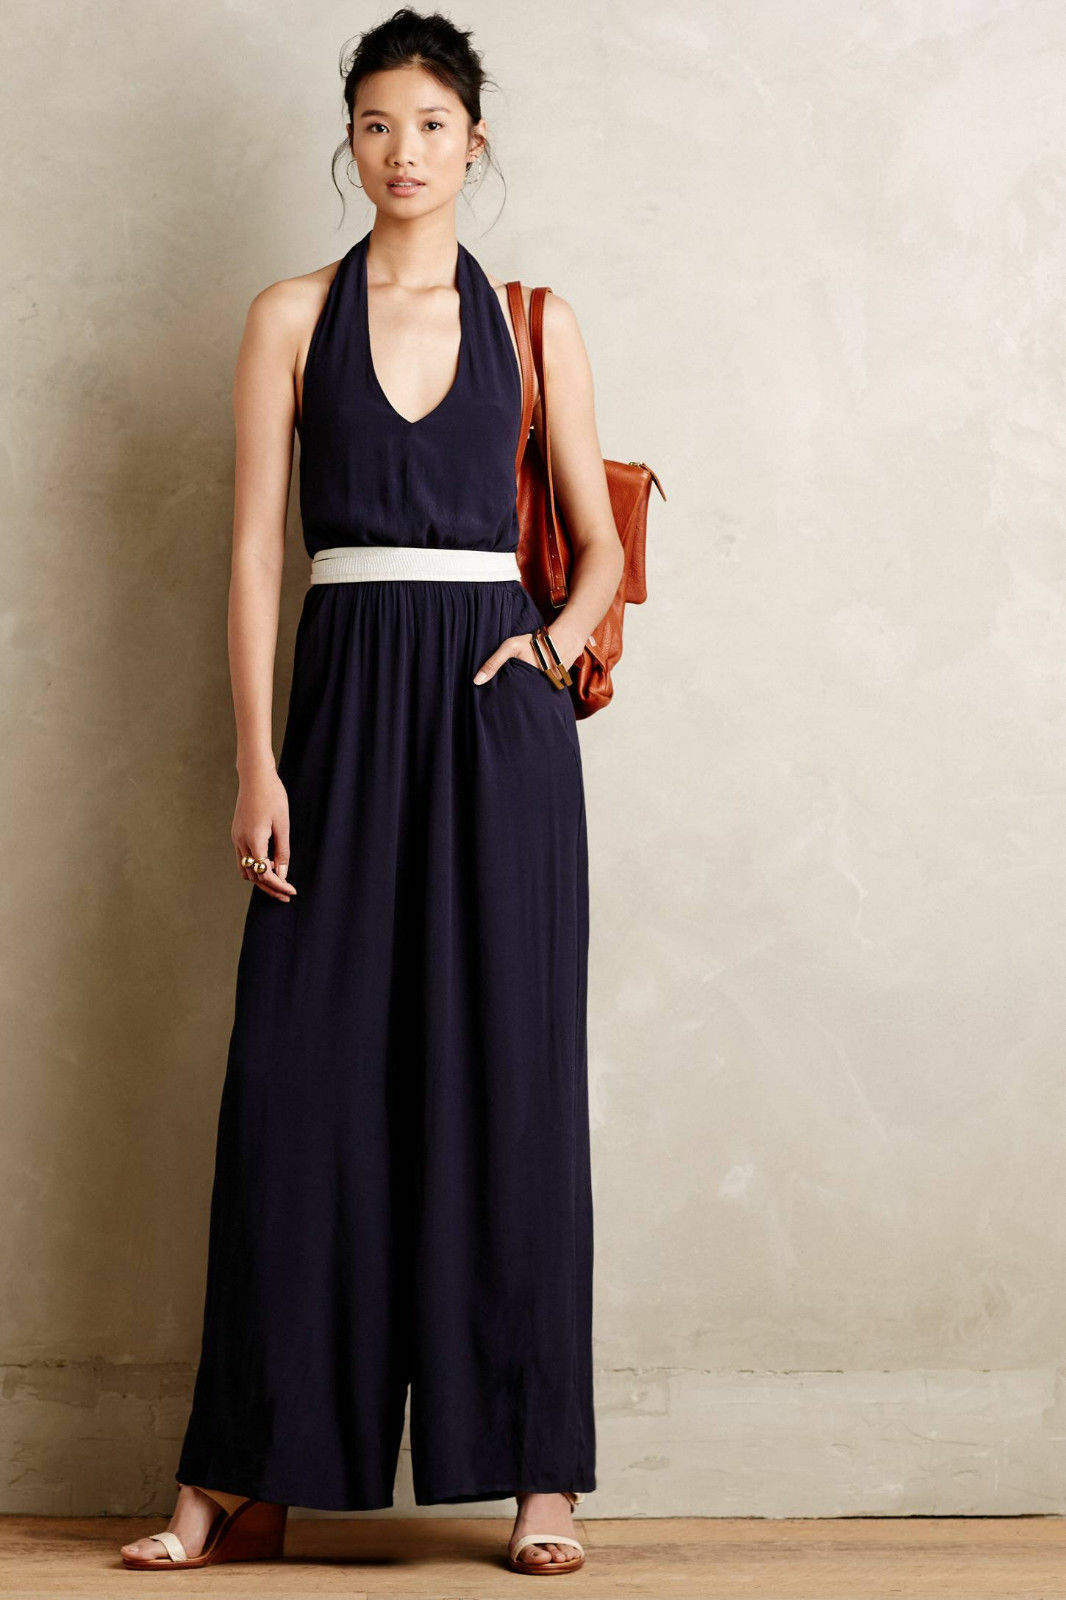 Anthropologie Jumpsuit Wide Leg Adria Halter Sleeveless Summer Bishop + Young, S